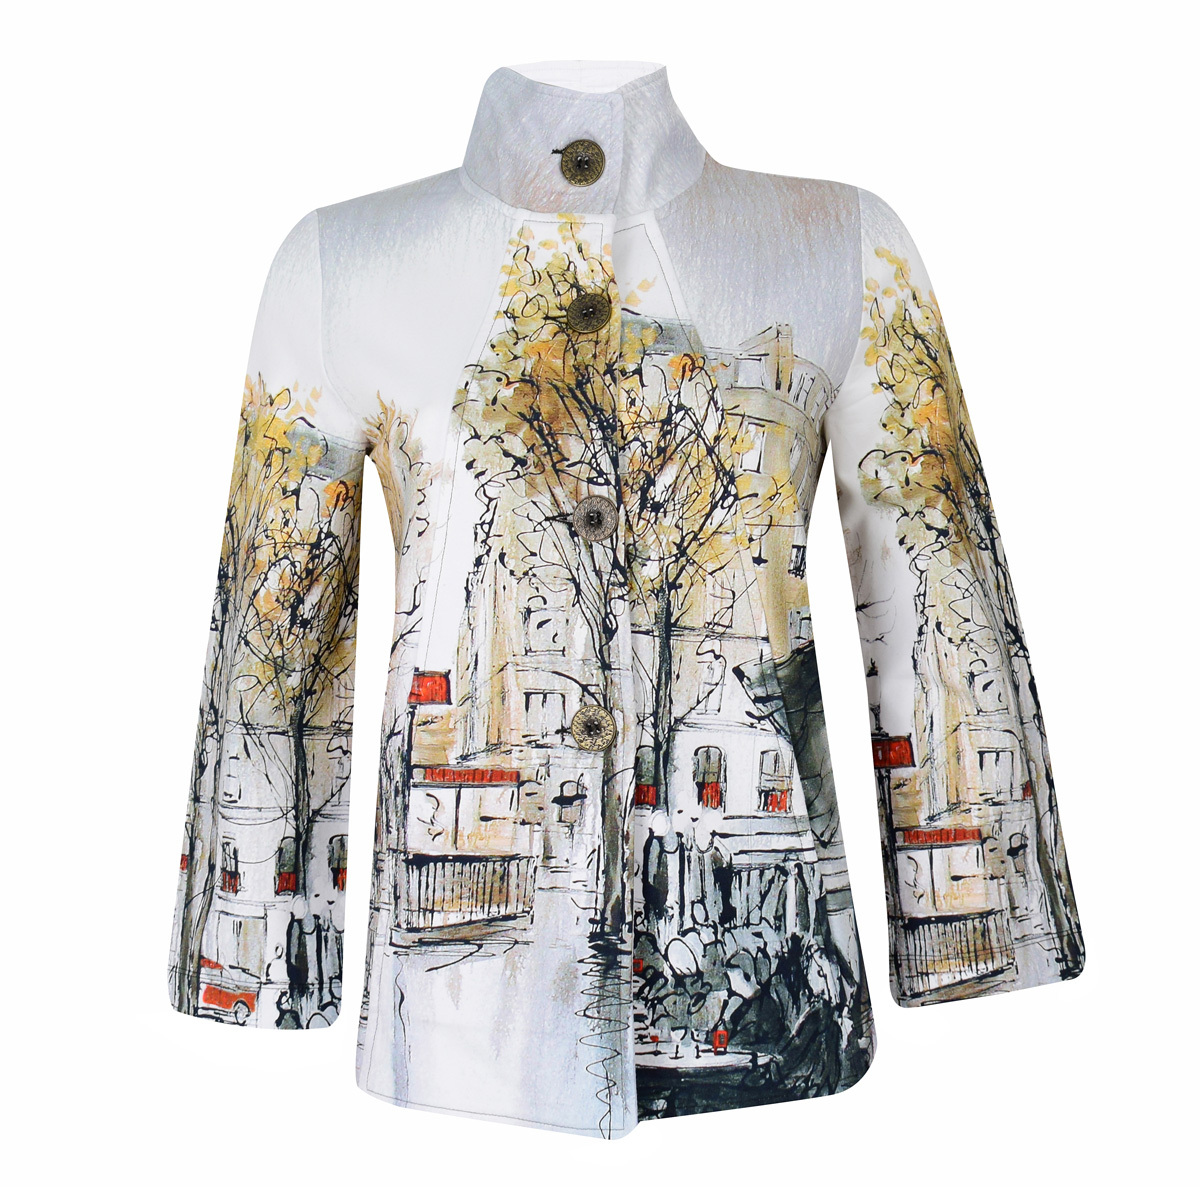 Simply Art Dolcezza: Splendid Parisian Life Swing Jacket SOLD OUT Dolcezza_SimplyArt_59707_N